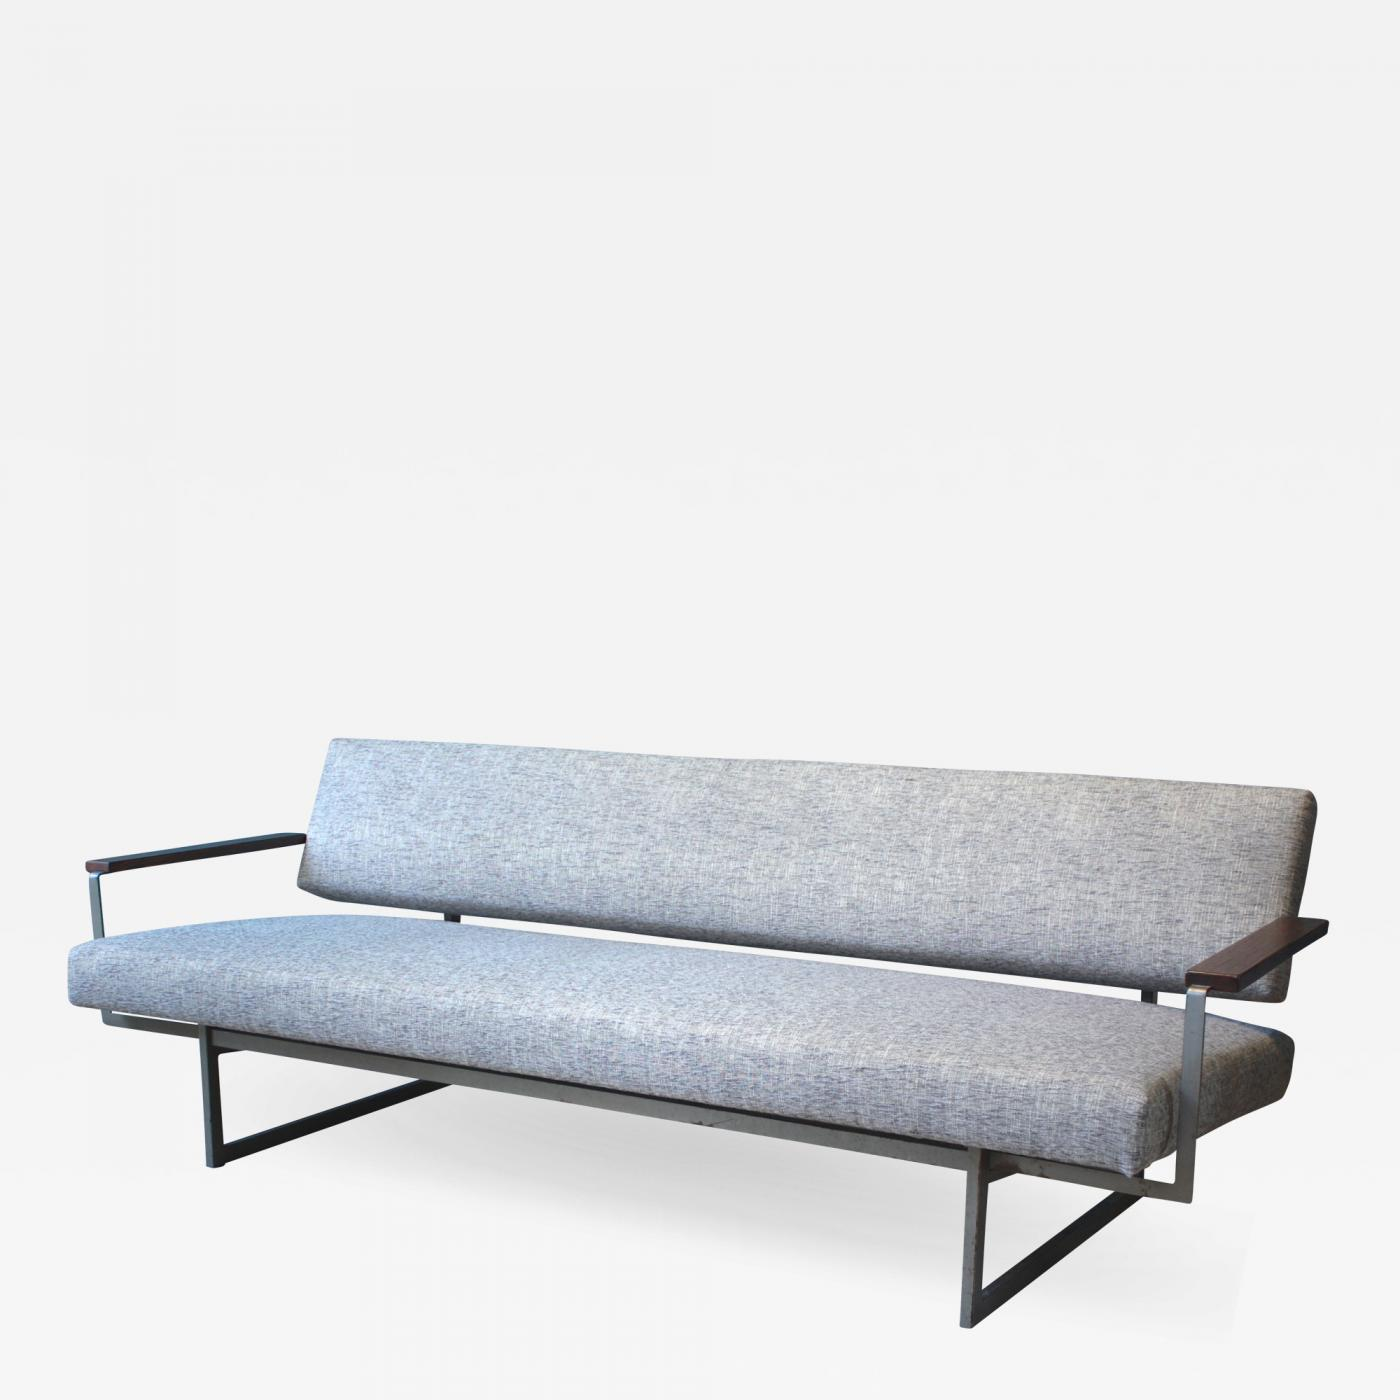 Vintage Couch Robert Parry Reupholstered Grey Vintage Sofa Or Daybed By Rob Parry For Gelderland 1950s